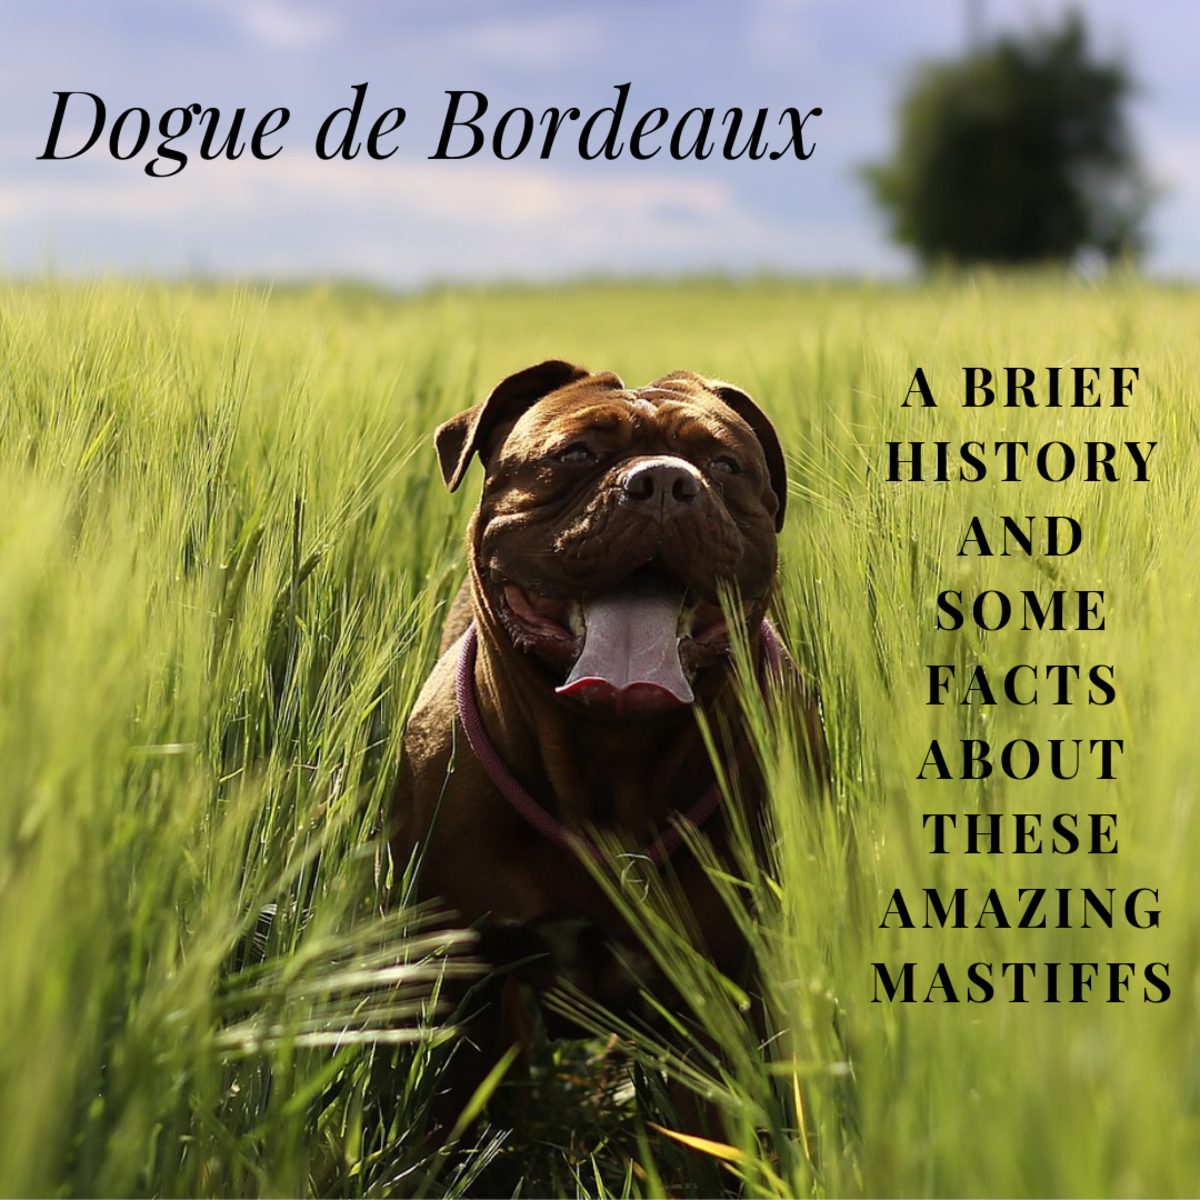 Dogue de Bordeaux: The Mastiff Breed That Can't Be Exterminated